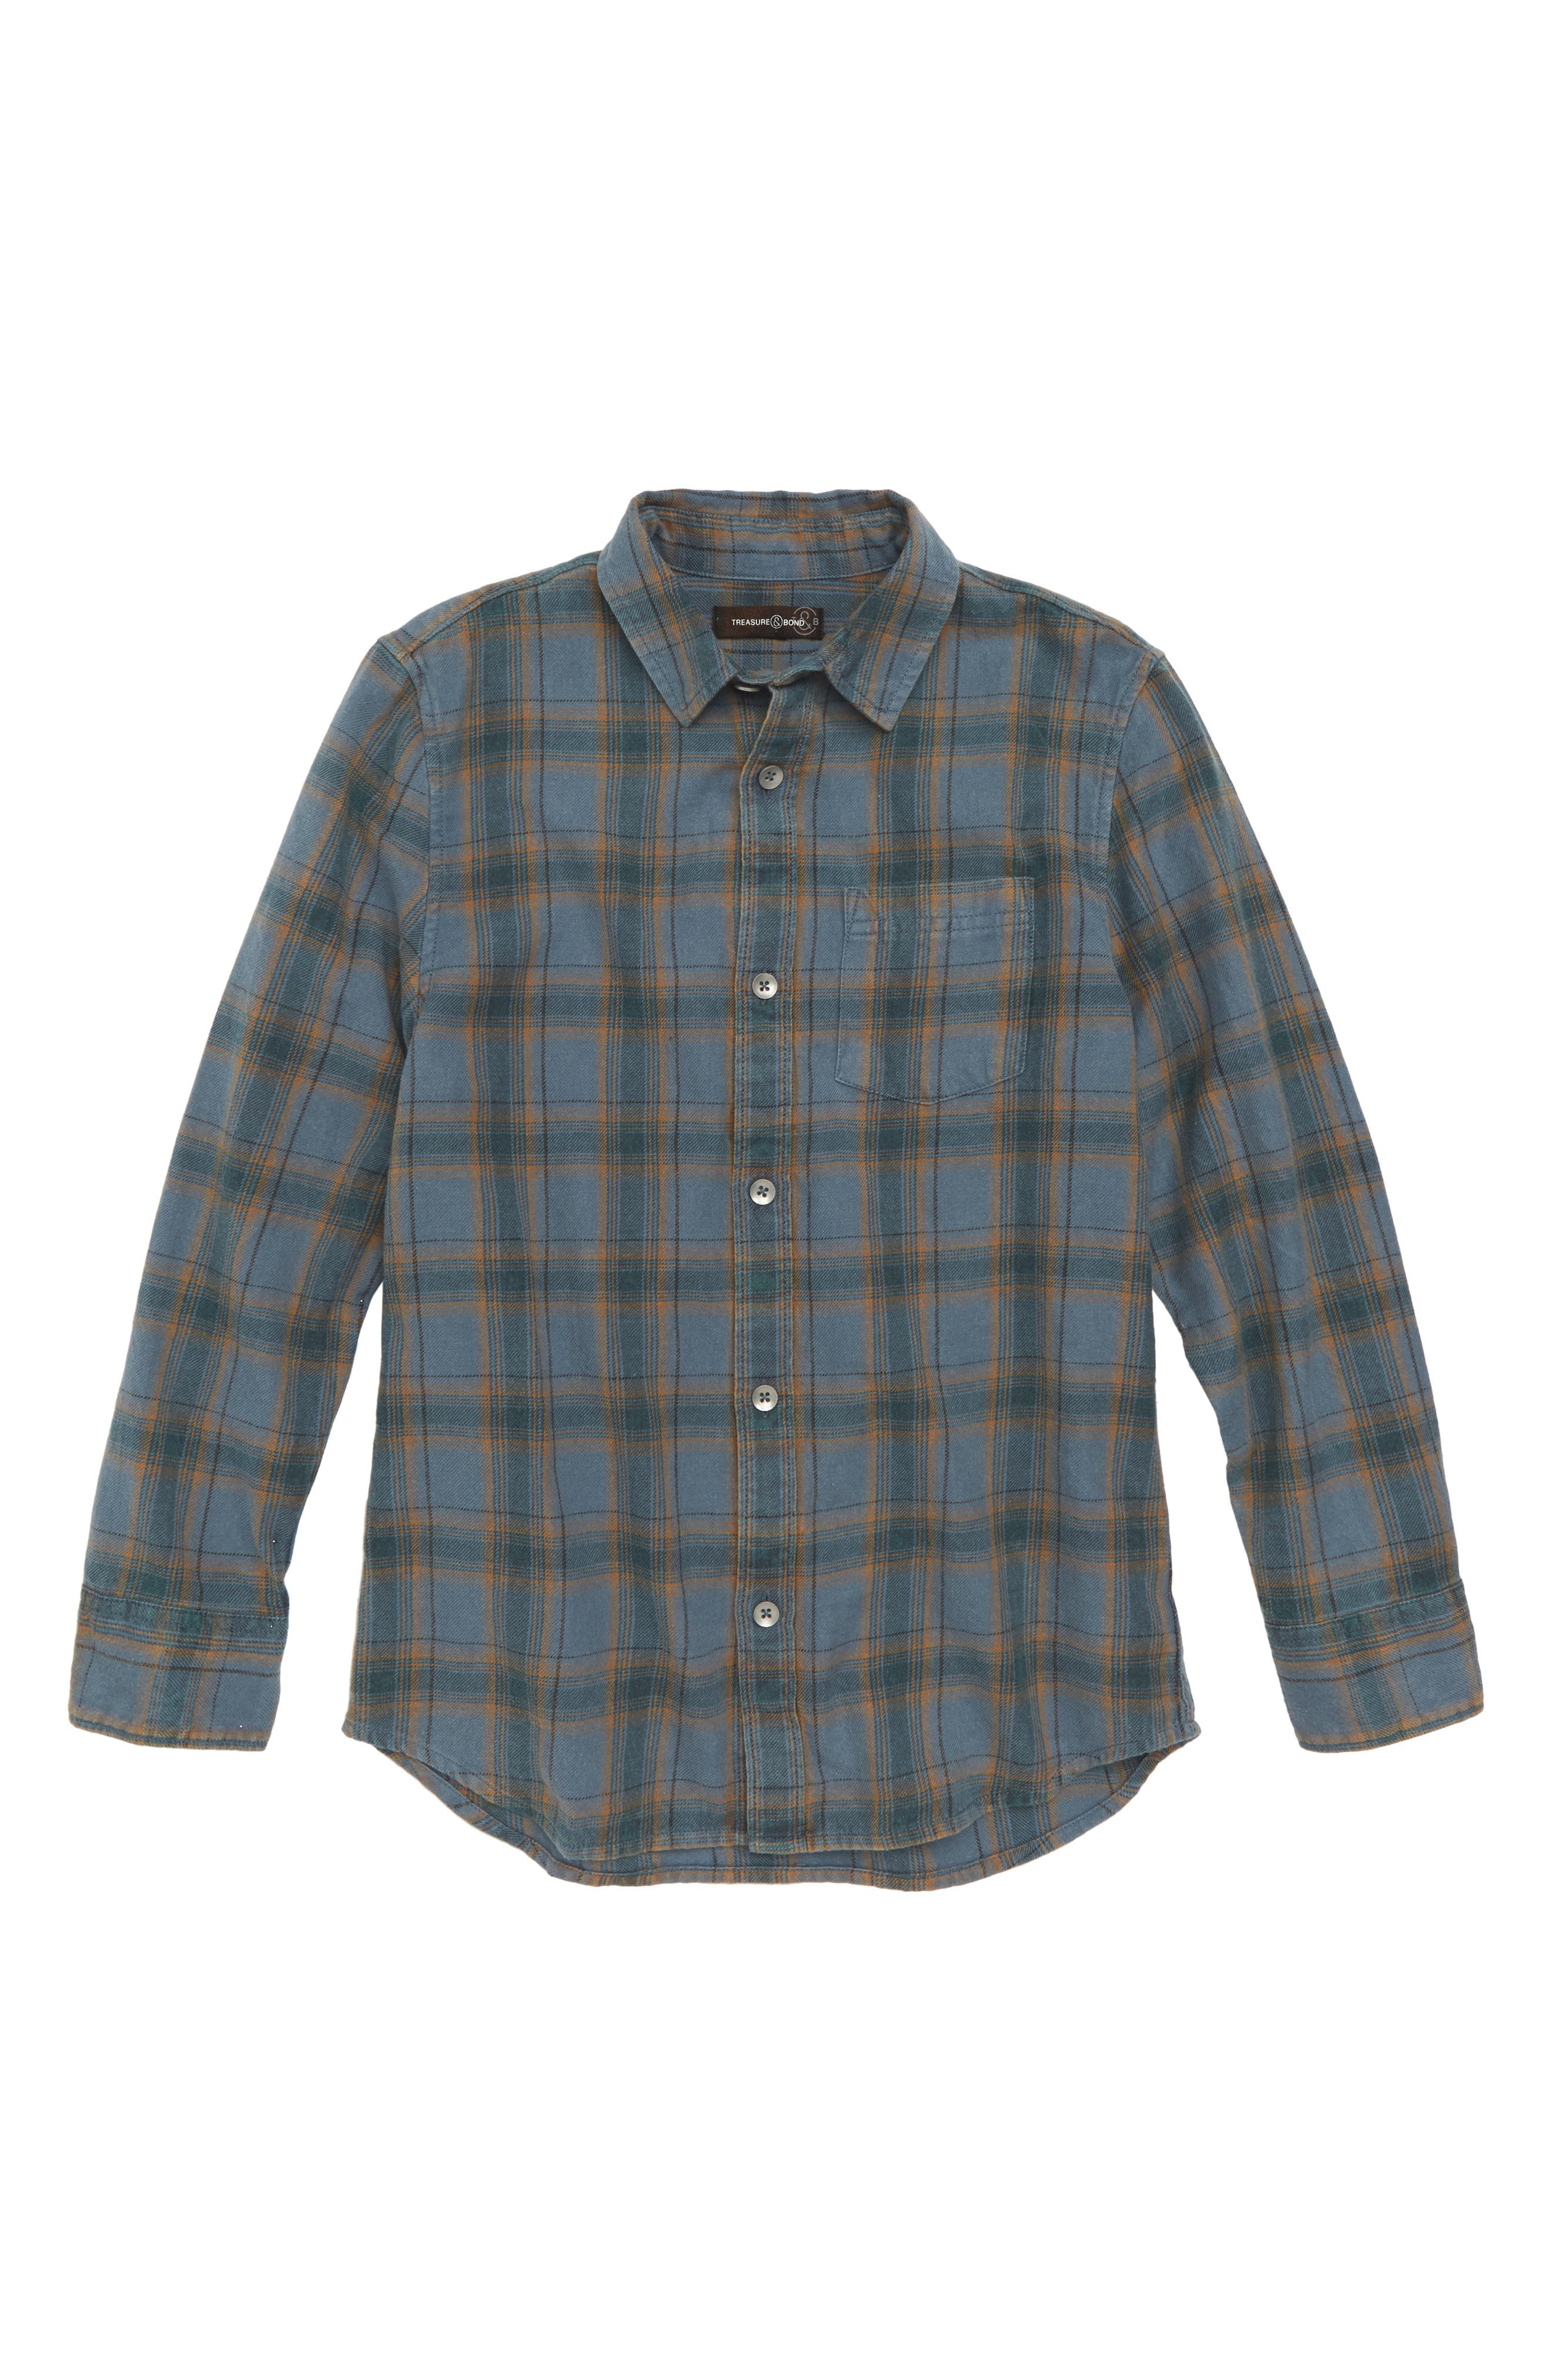 Washed Out Flannel Shirt,                         Main,                         color, Blue Chinoise- Brown Plaid